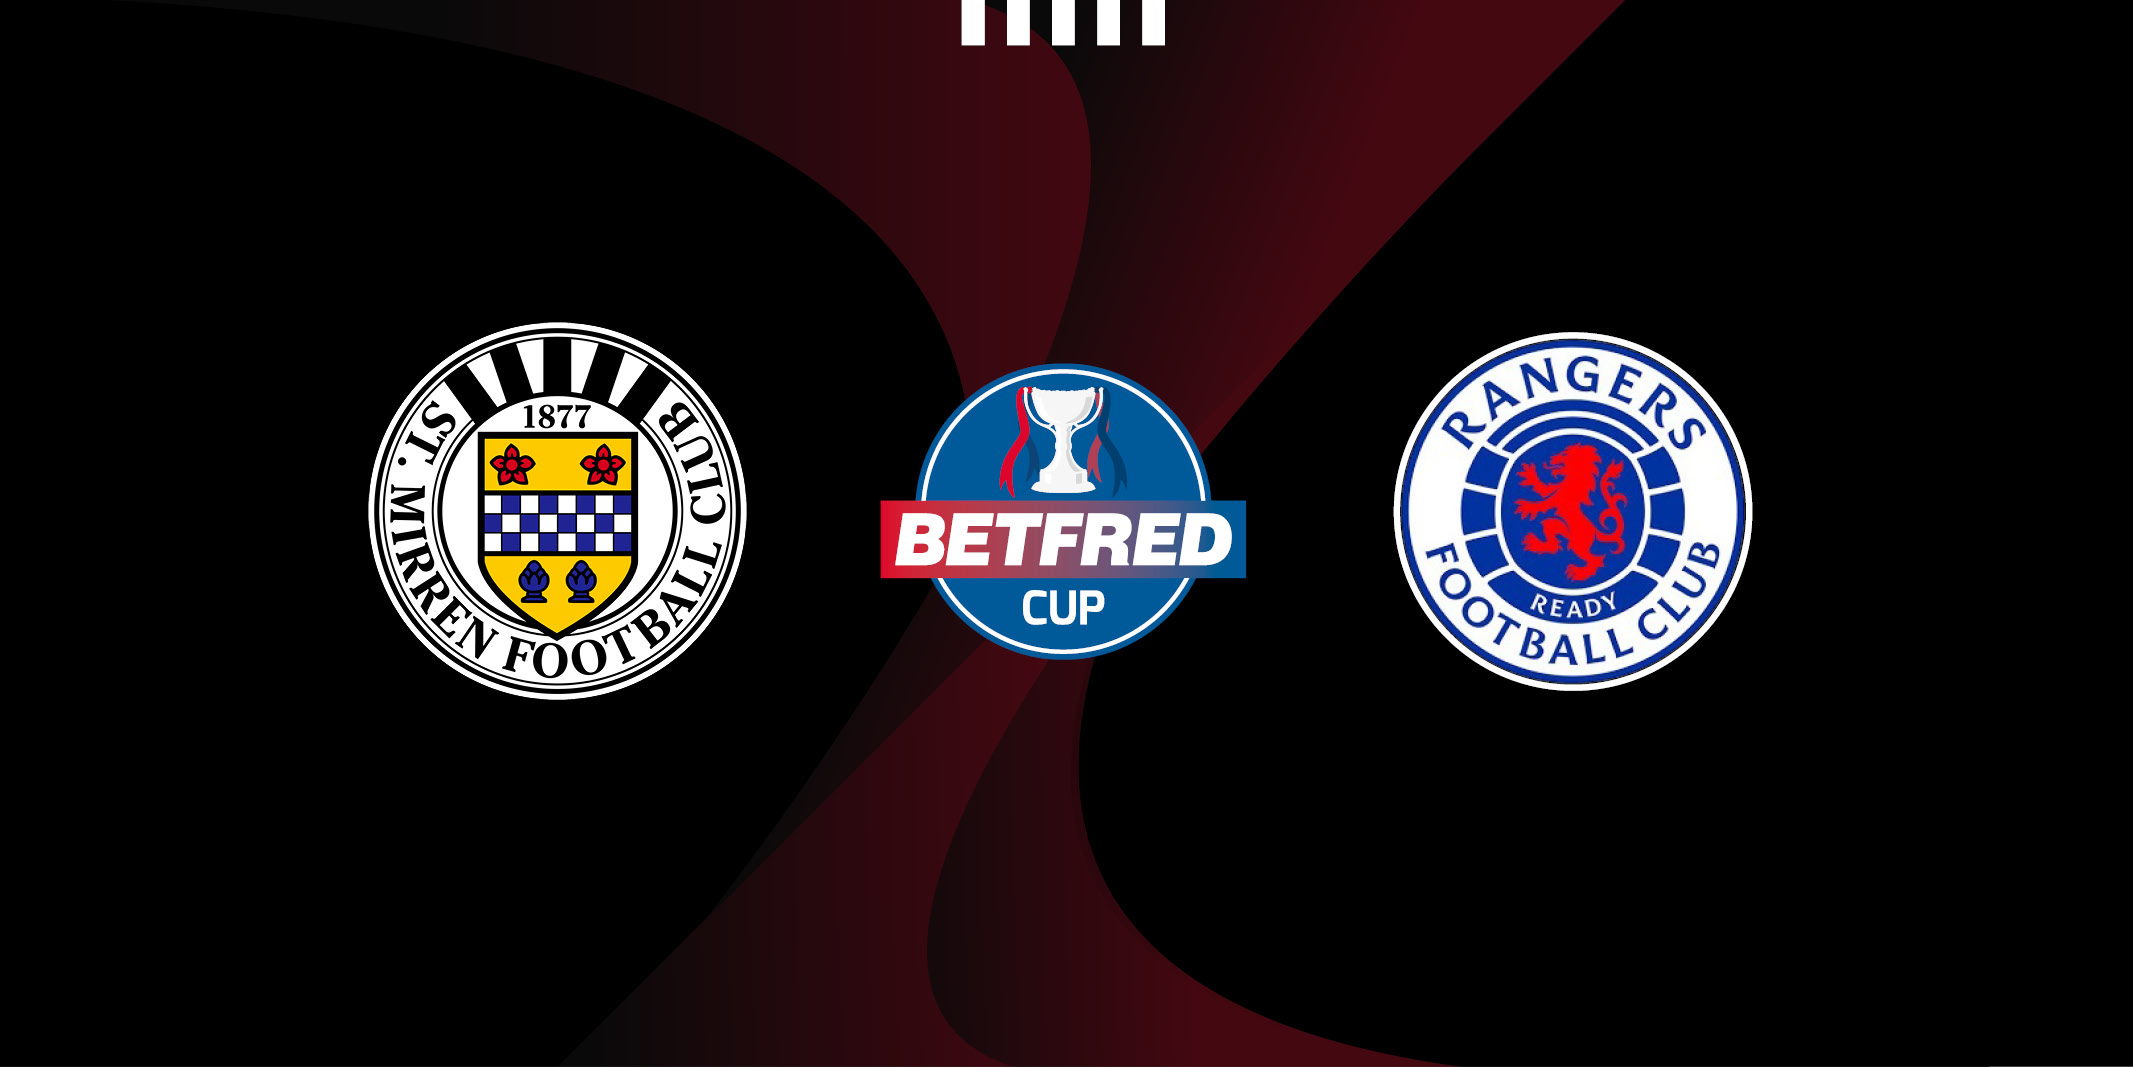 Up Next: St Mirren v Rangers (16th December)